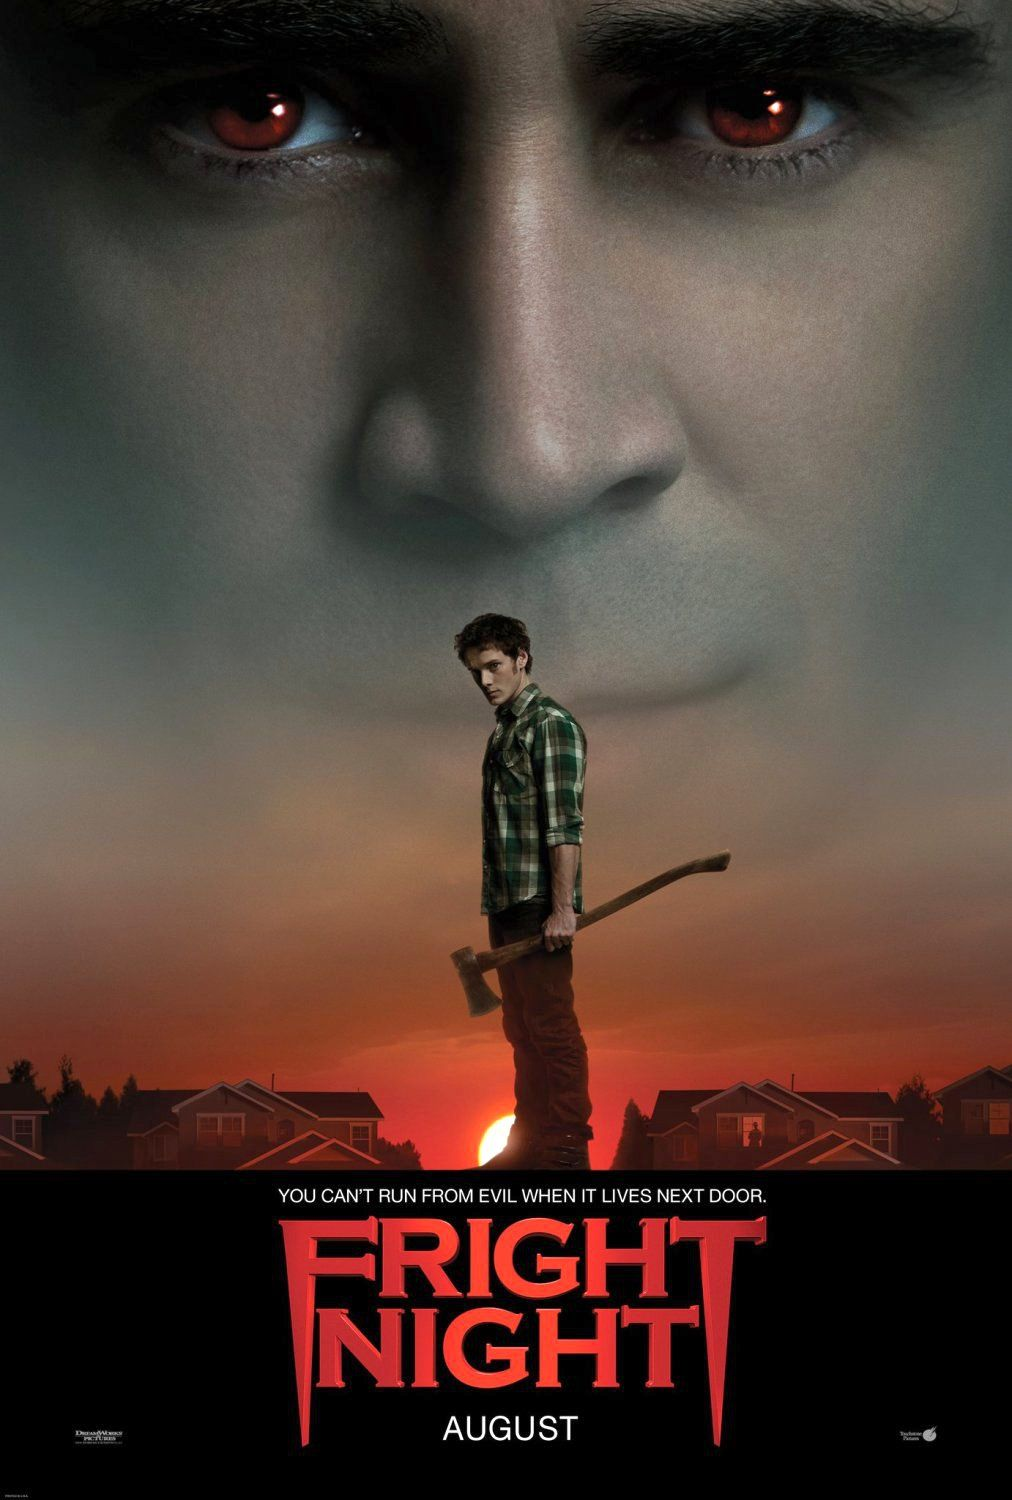 October 14th: Fright Night (2011)